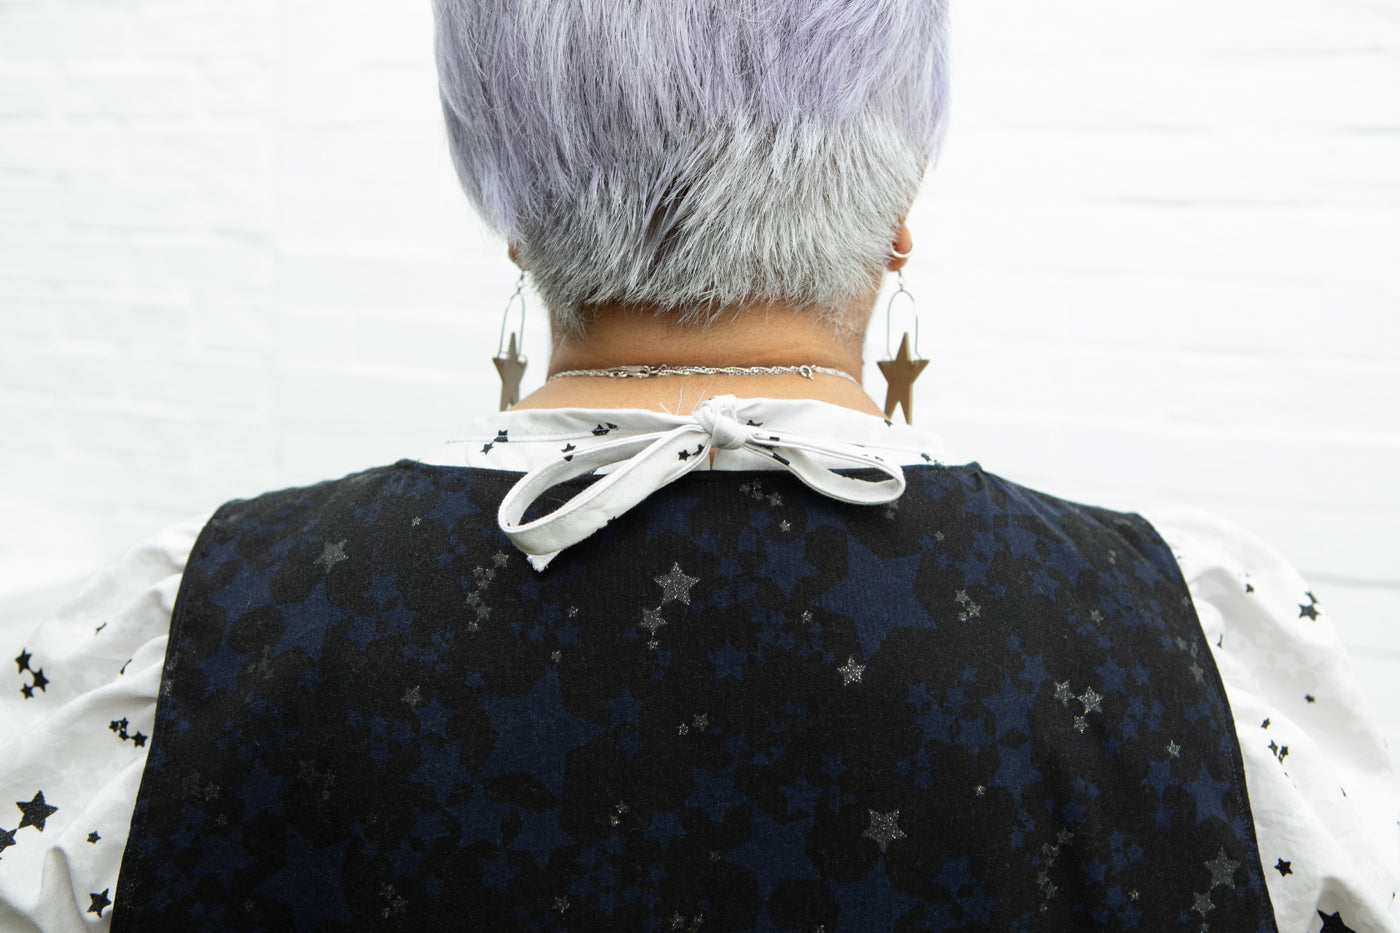 This is an image of the back of a woman wearing a shirt that ties closed at the neck. The fabric of the shirt she is wearing is white with stars on it and the dress she is wearing is black with stars on it.